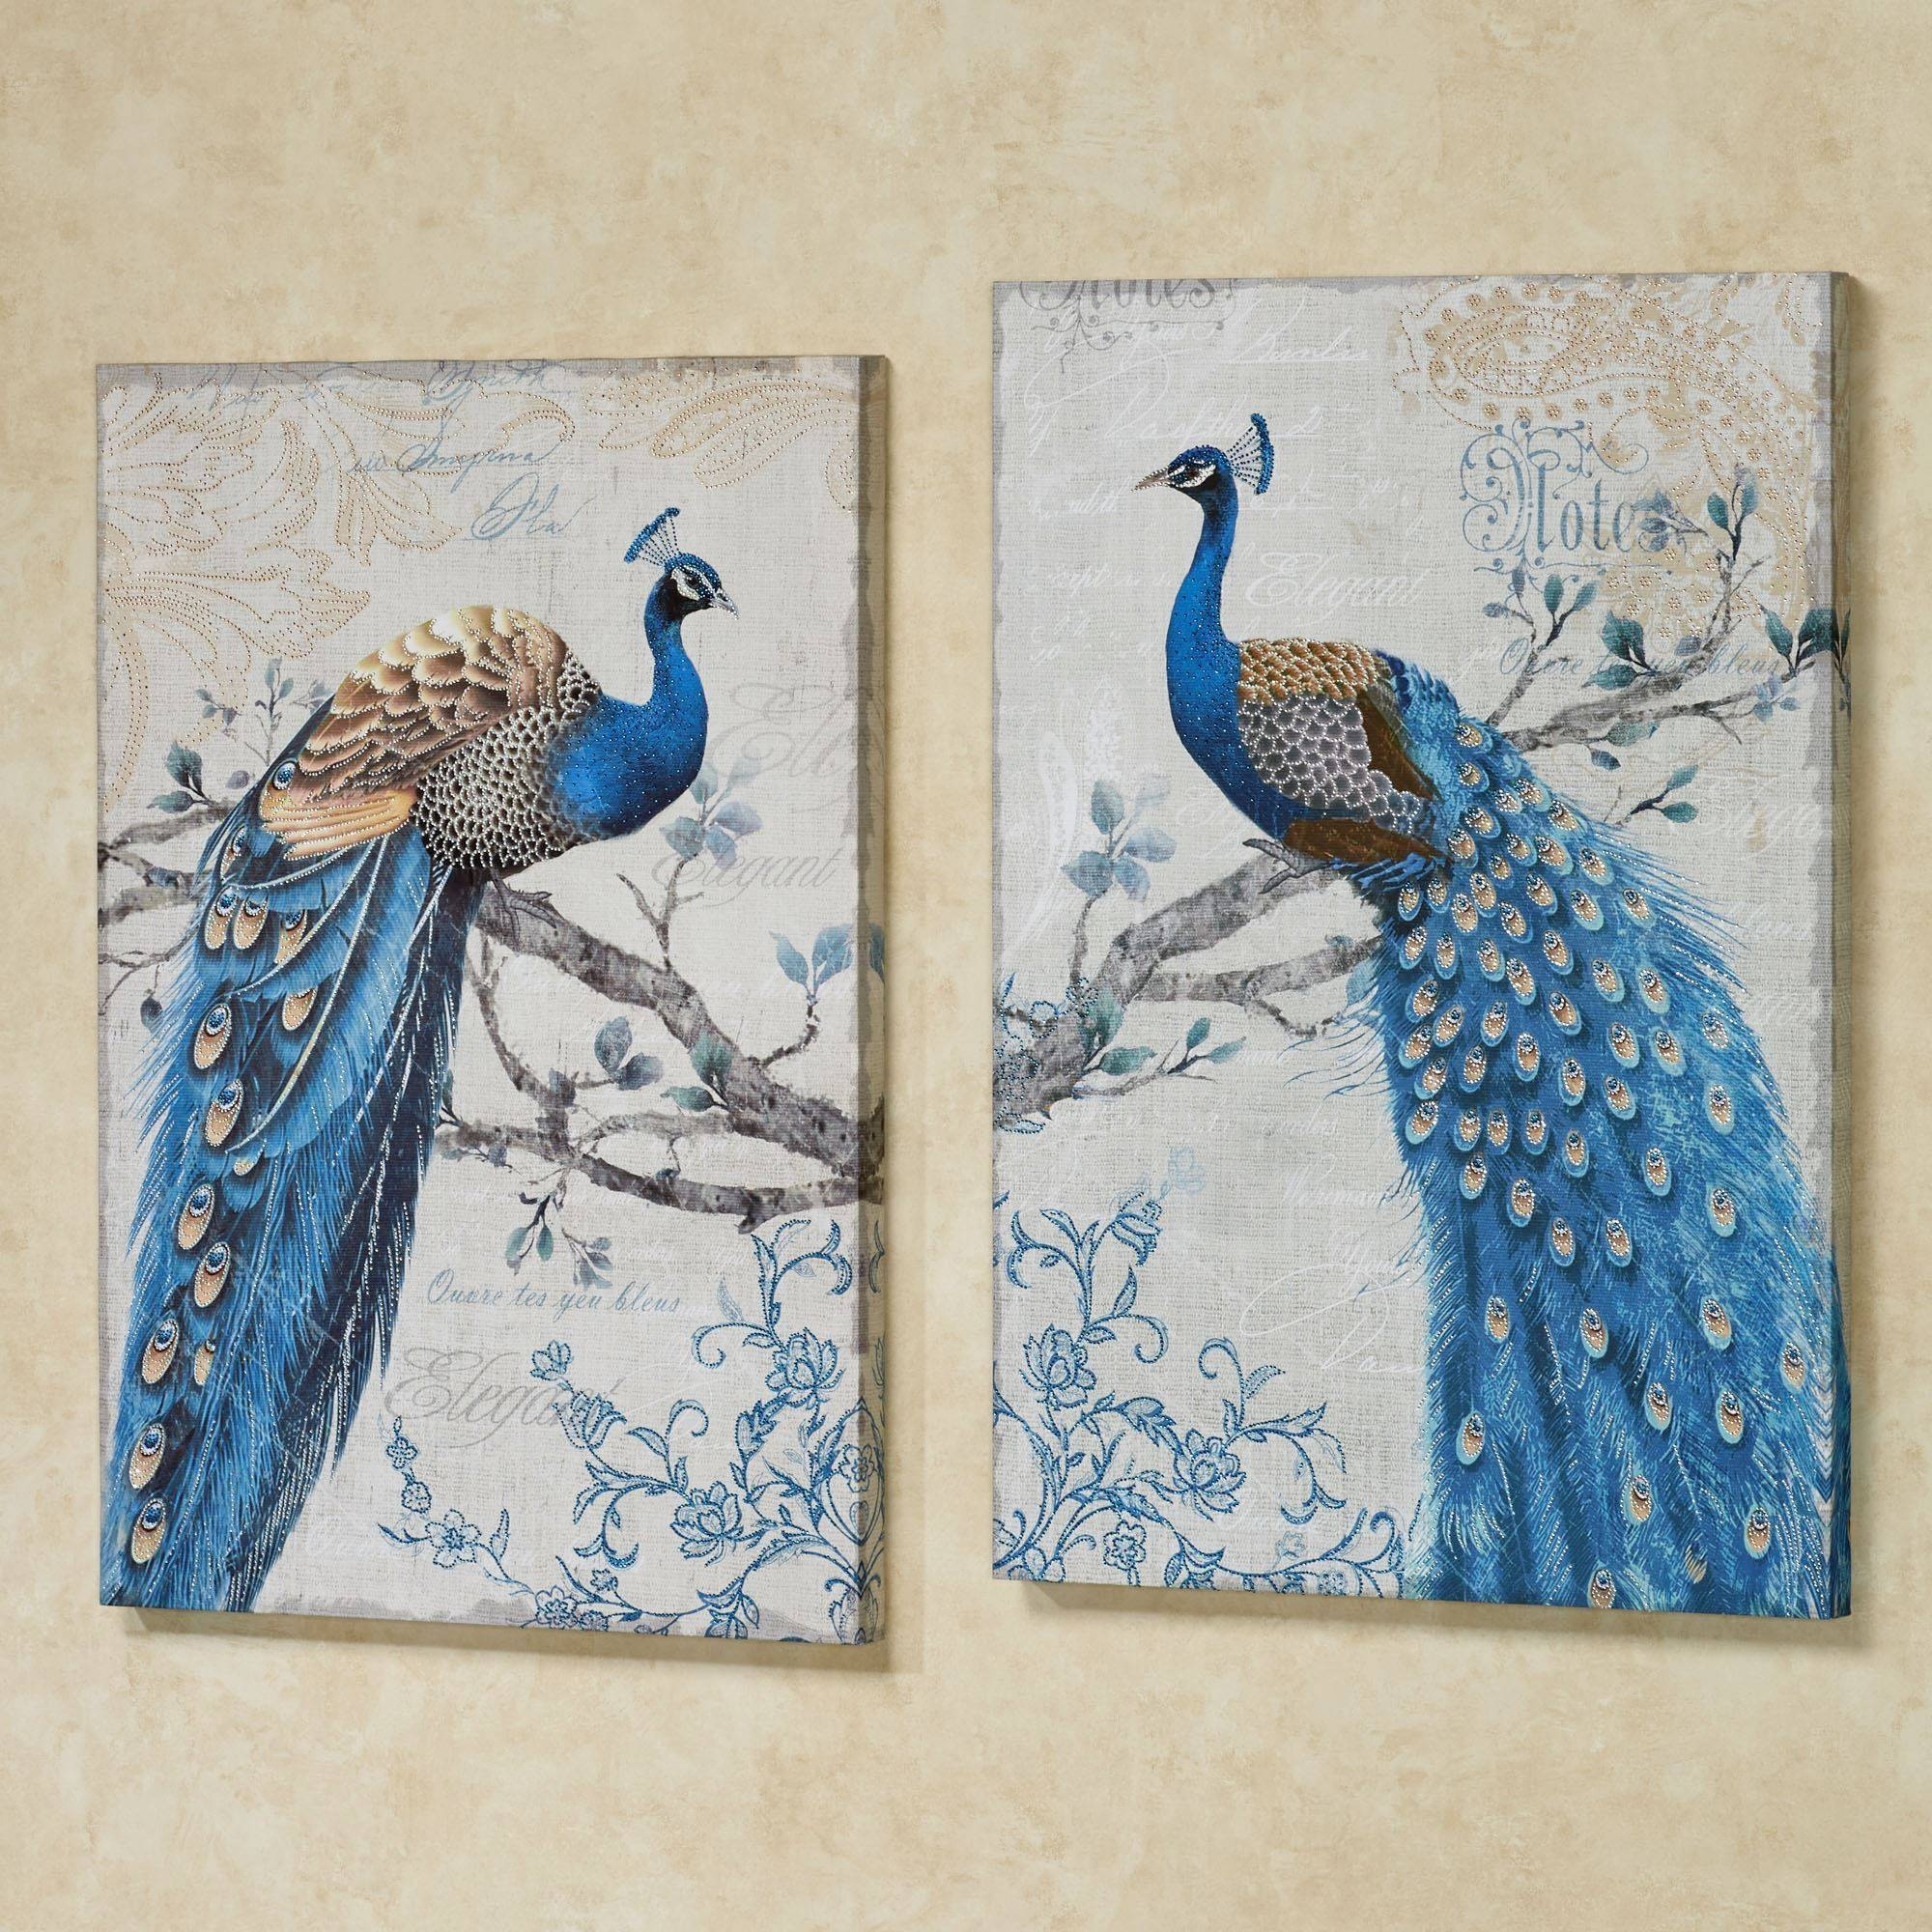 Magnificent Peacock Giclee Canvas Wall Art Set Intended For Most Recently Released Blue And Silver Wall Art (View 16 of 20)